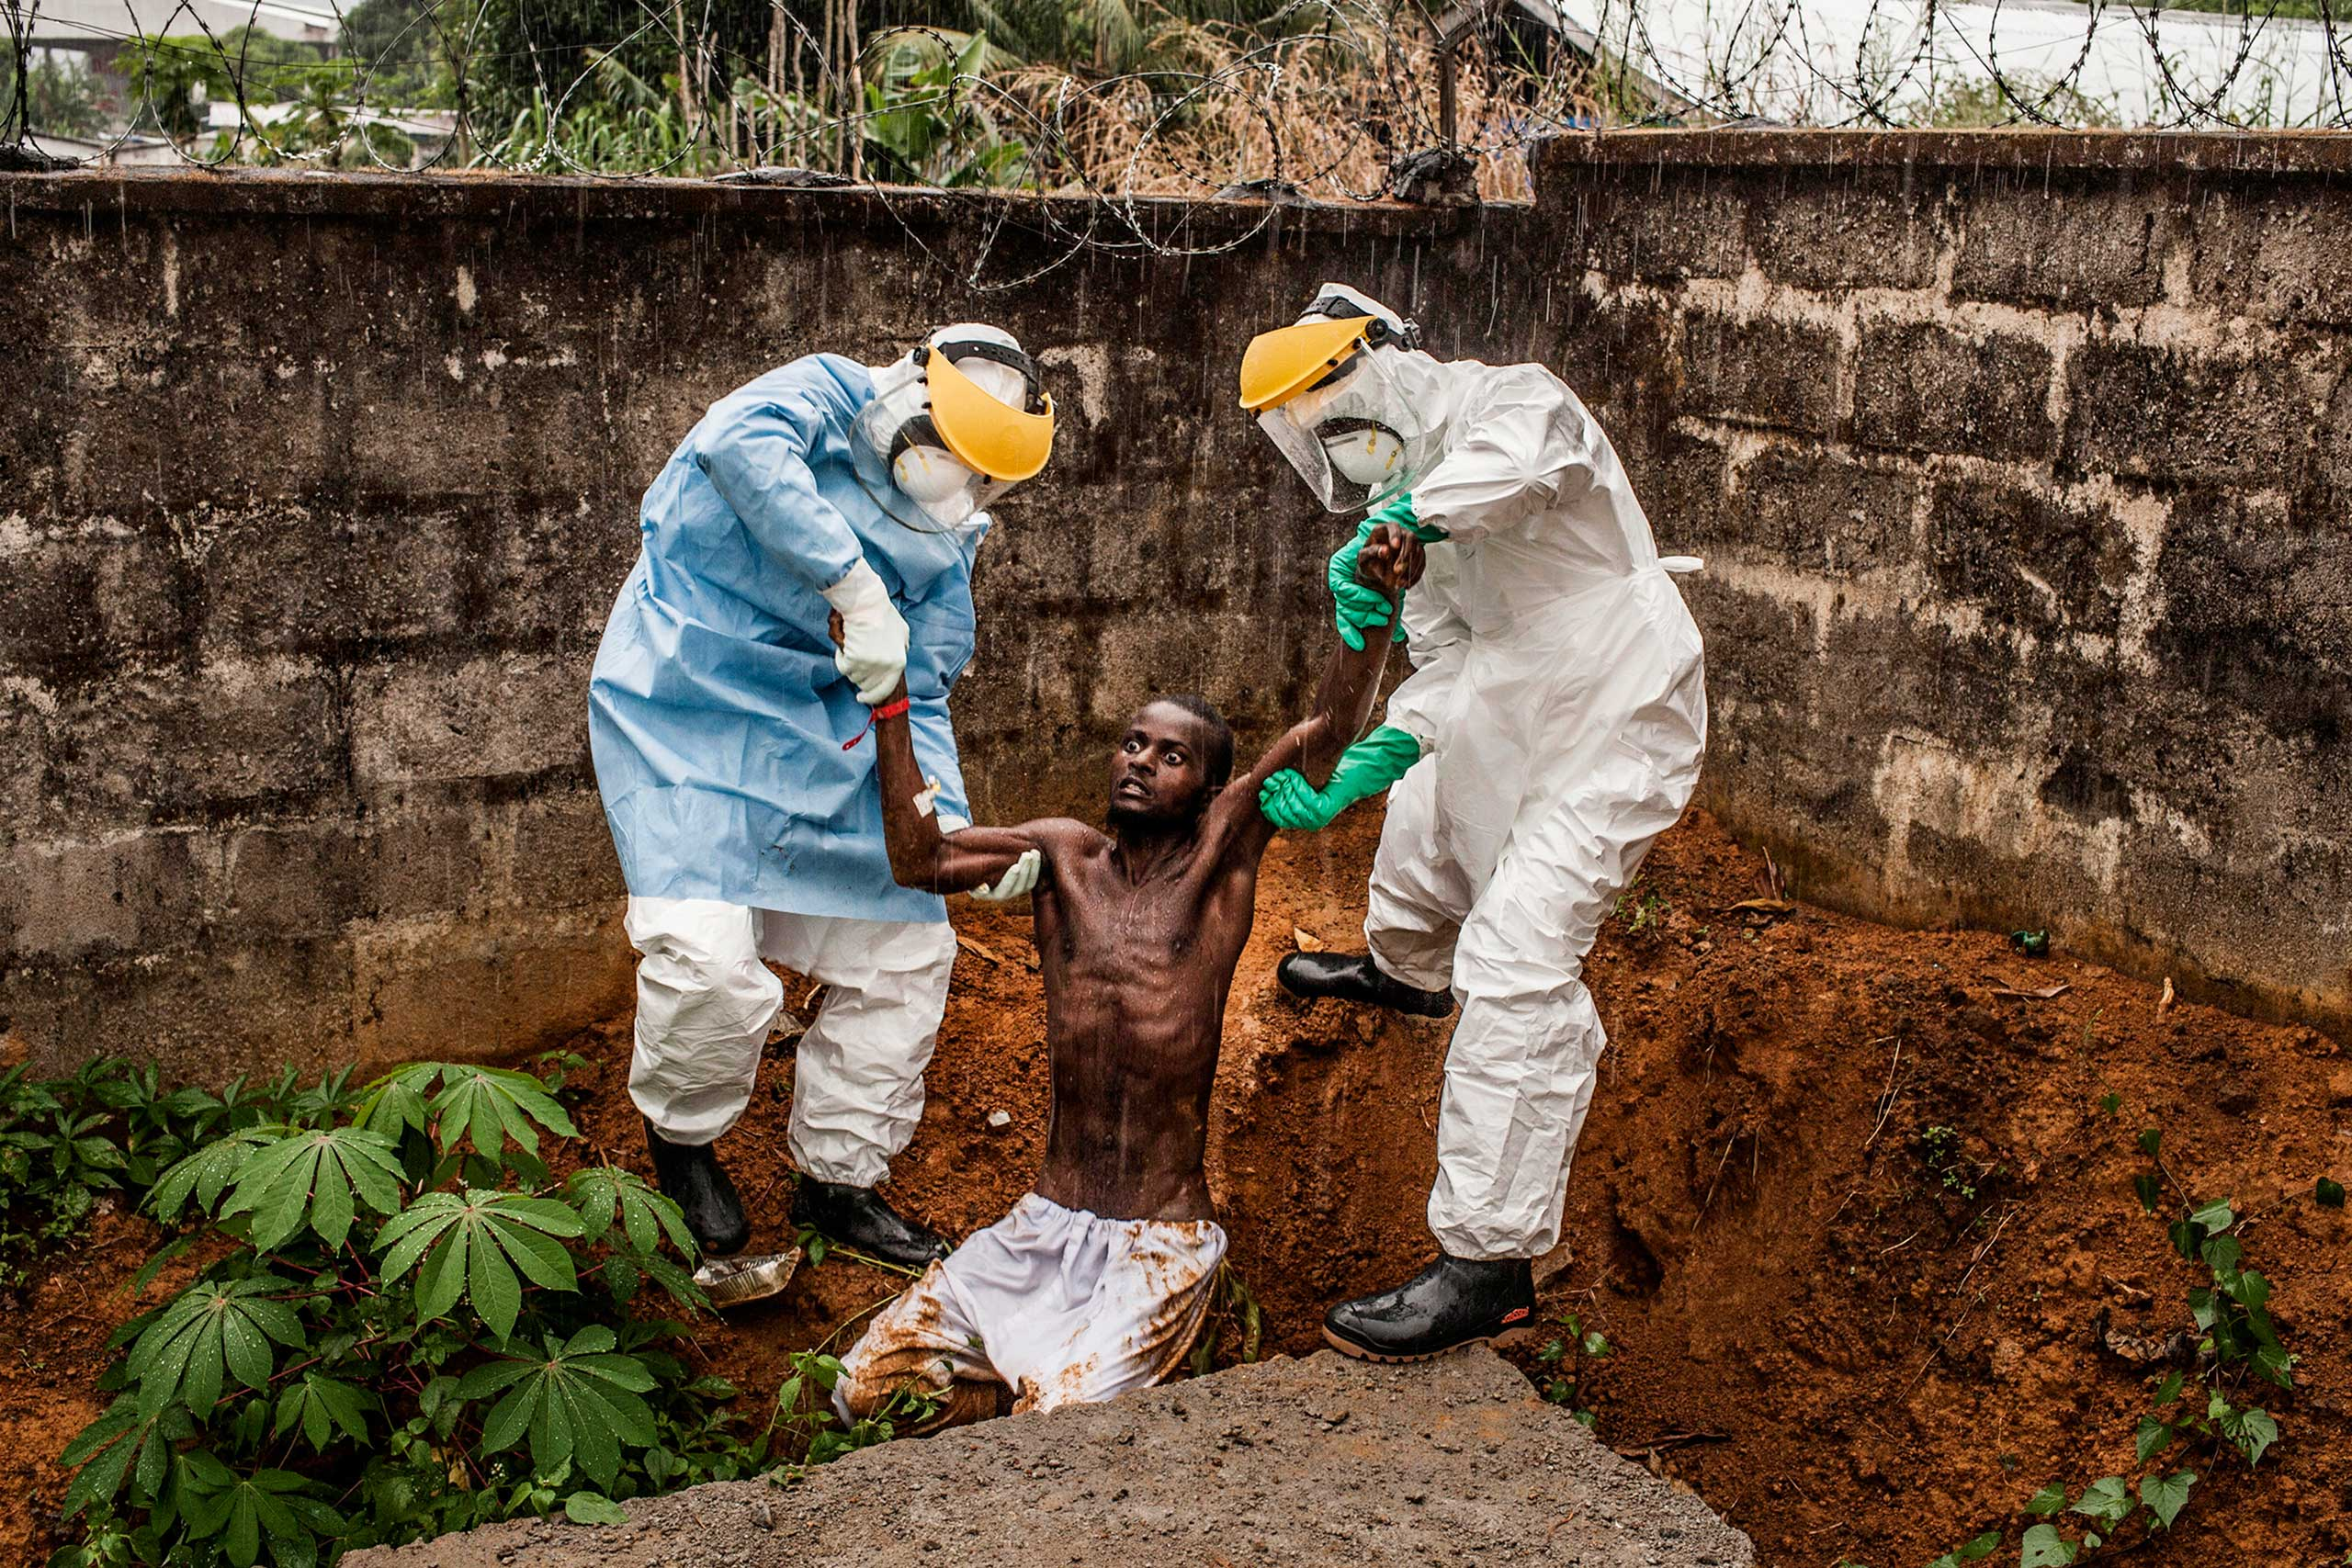 <b>First Prize General News Category, Stories</b>                                   Medical staff at the Hastings Ebola Treatment Center work escort a man in the throes Ebola-induced delirium back into the isolation ward from which he escaped in Hastings, Sierra Leone on Sunday, Nov. 23, 2014.